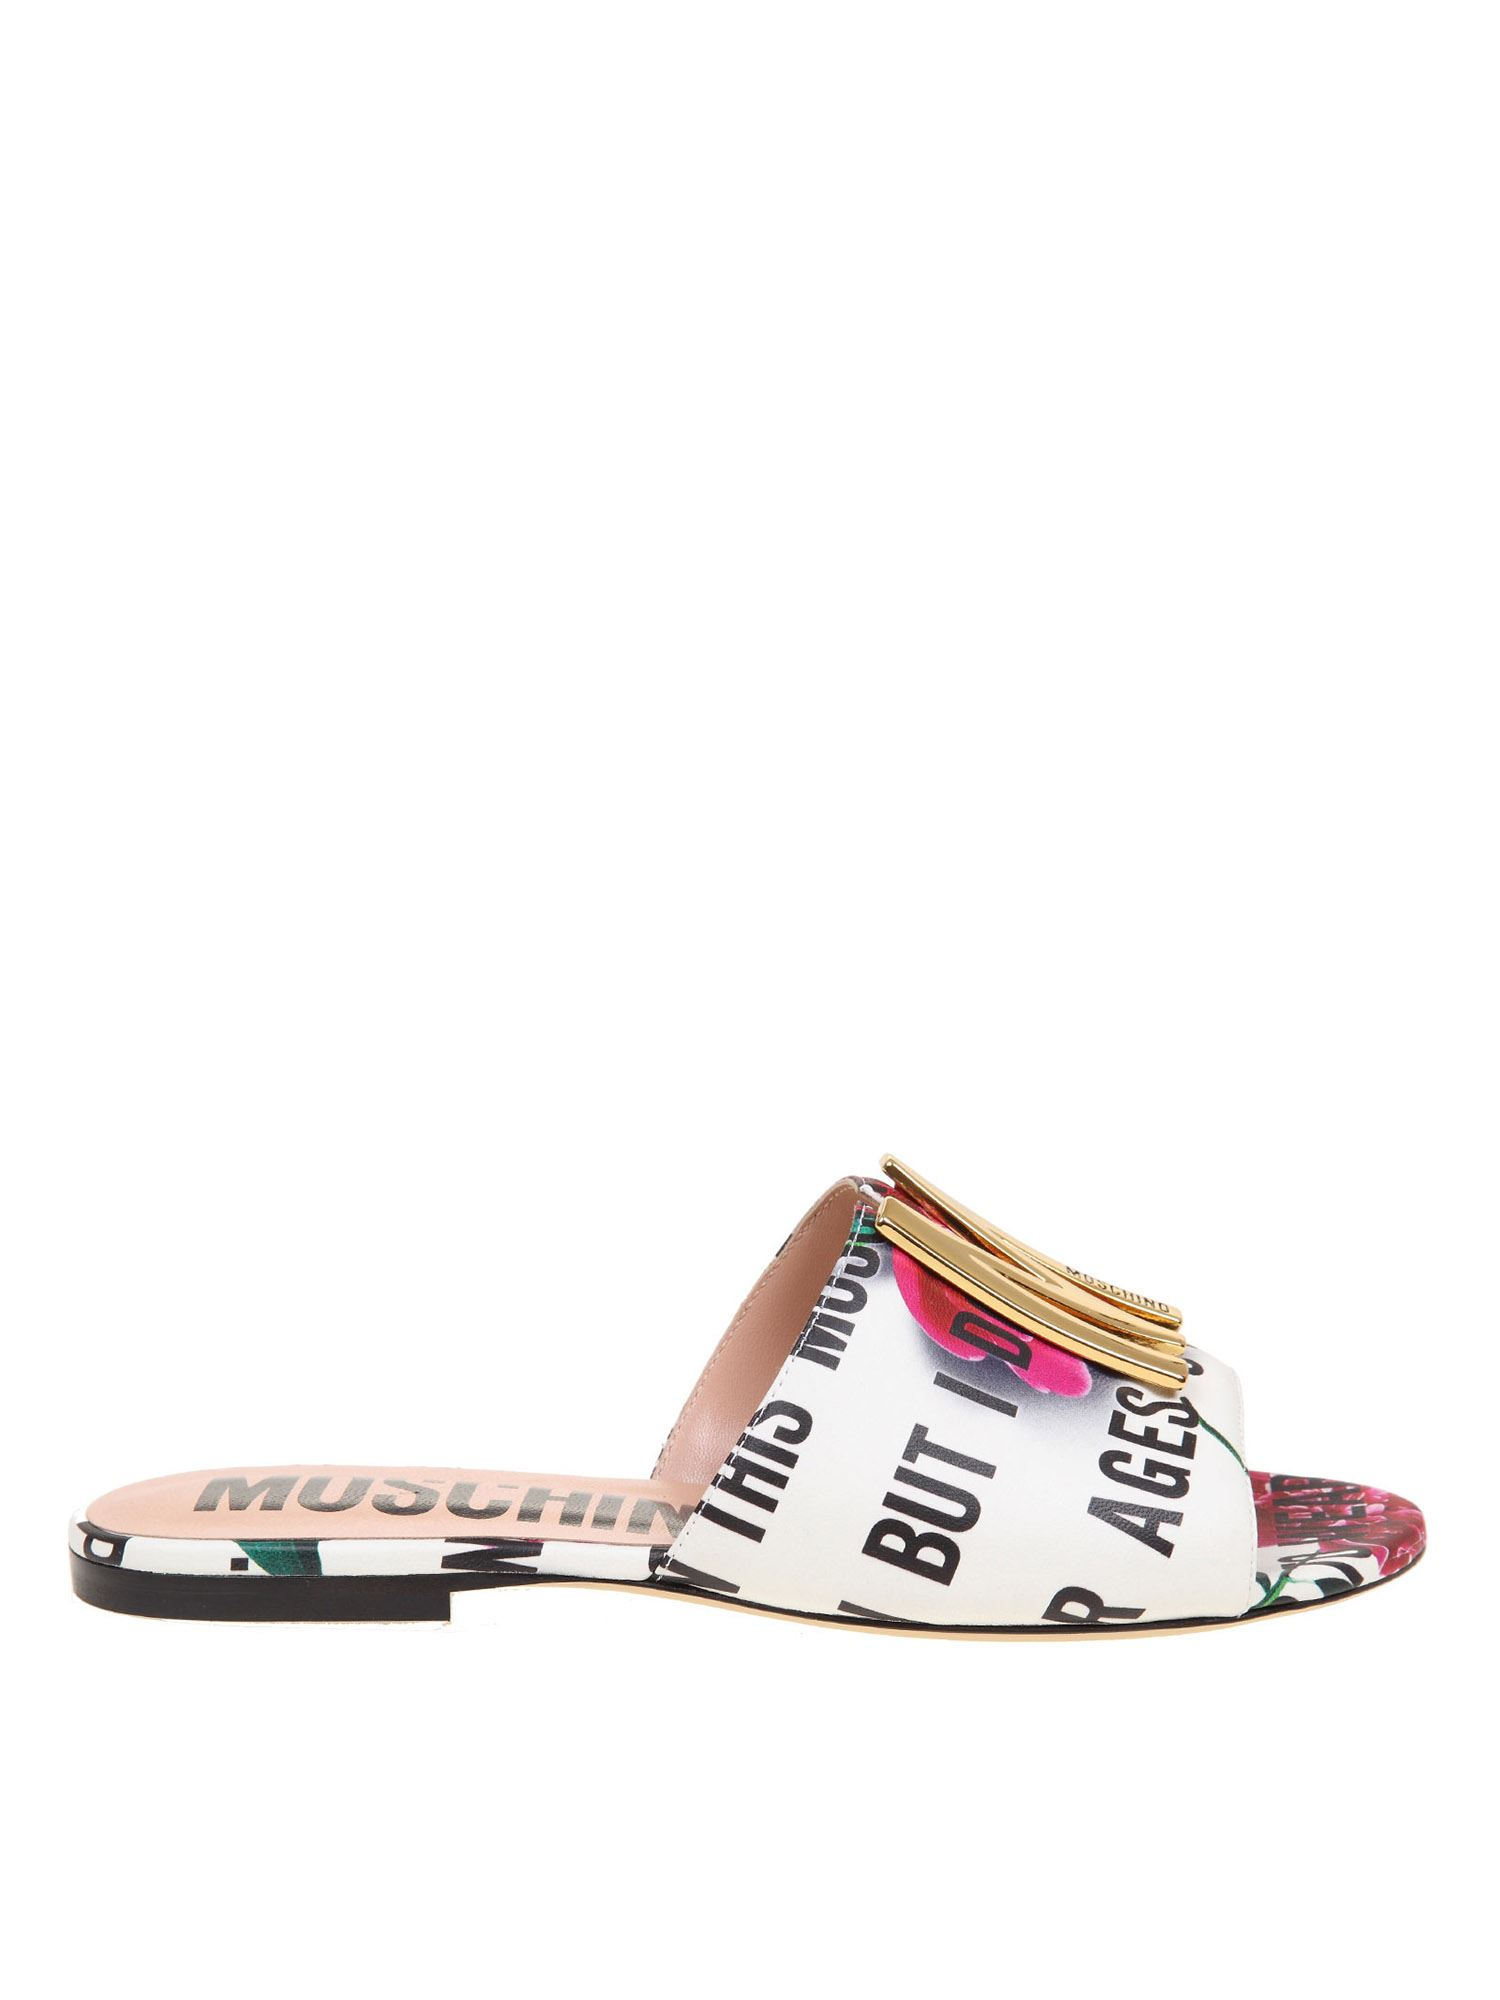 MOSCHINO M SLOGAN AND FLOWERS SANDALS IN WHITE